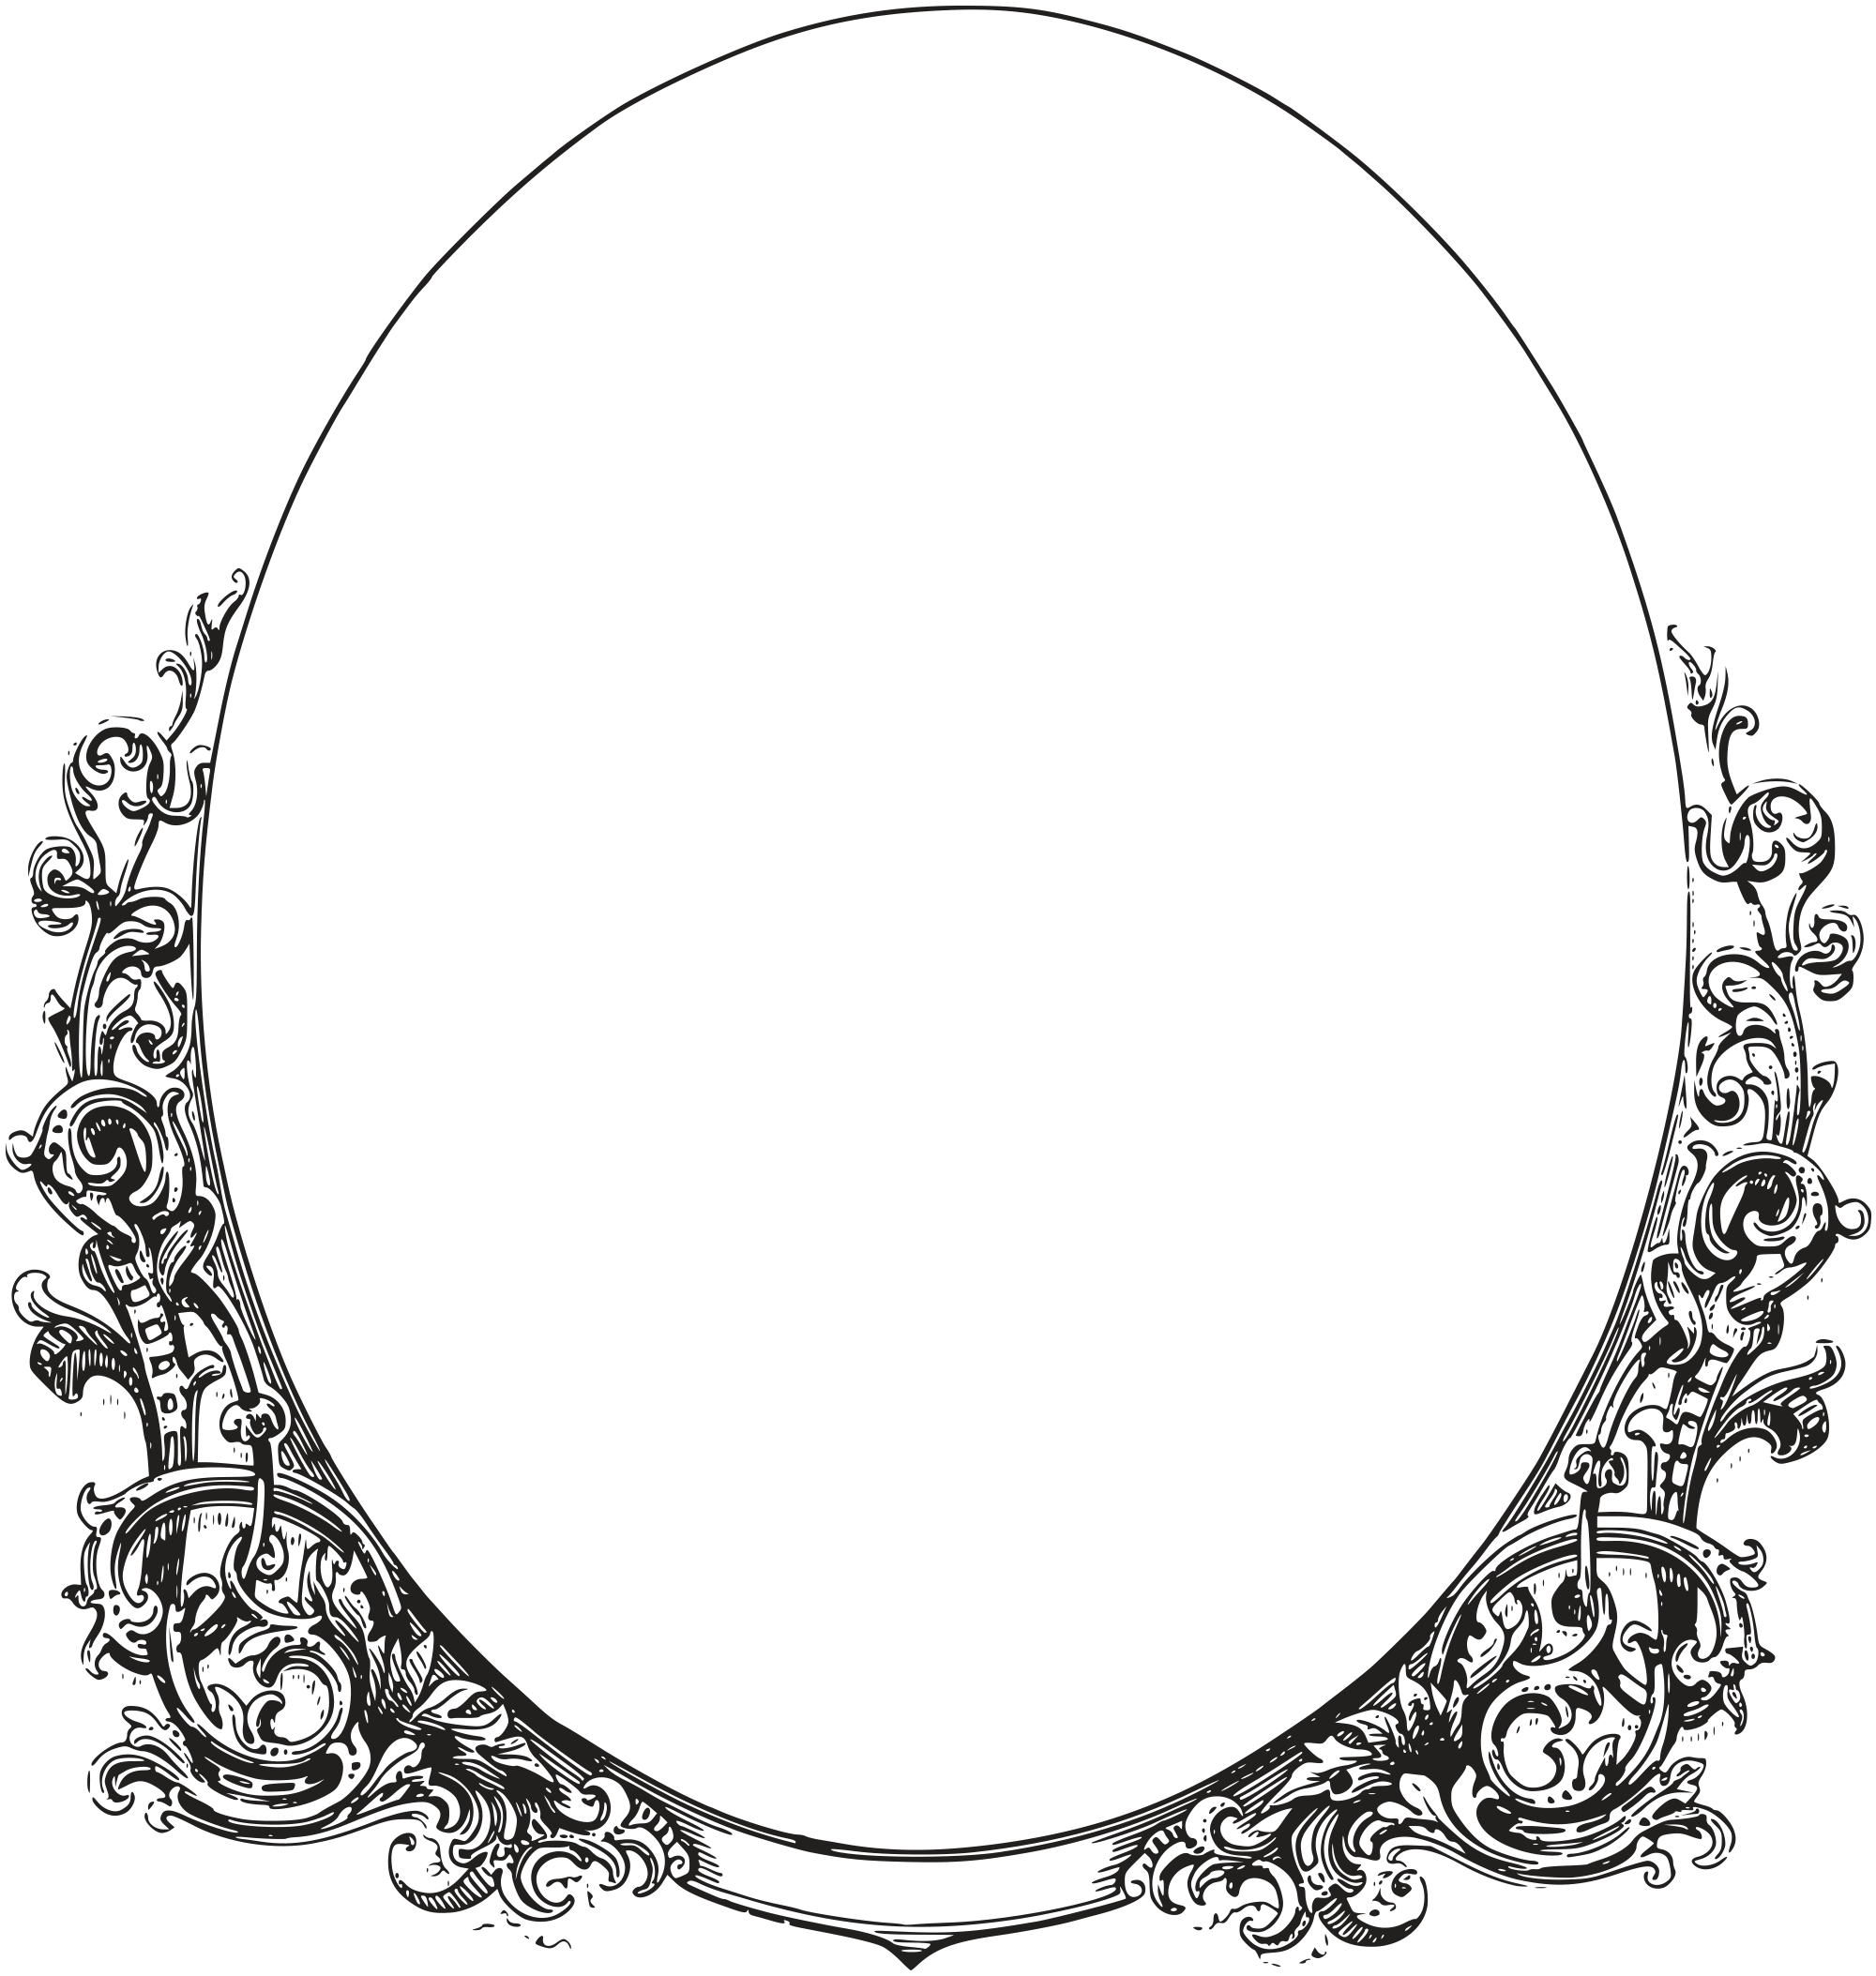 Swoop vector oval. Royalty free images ornate